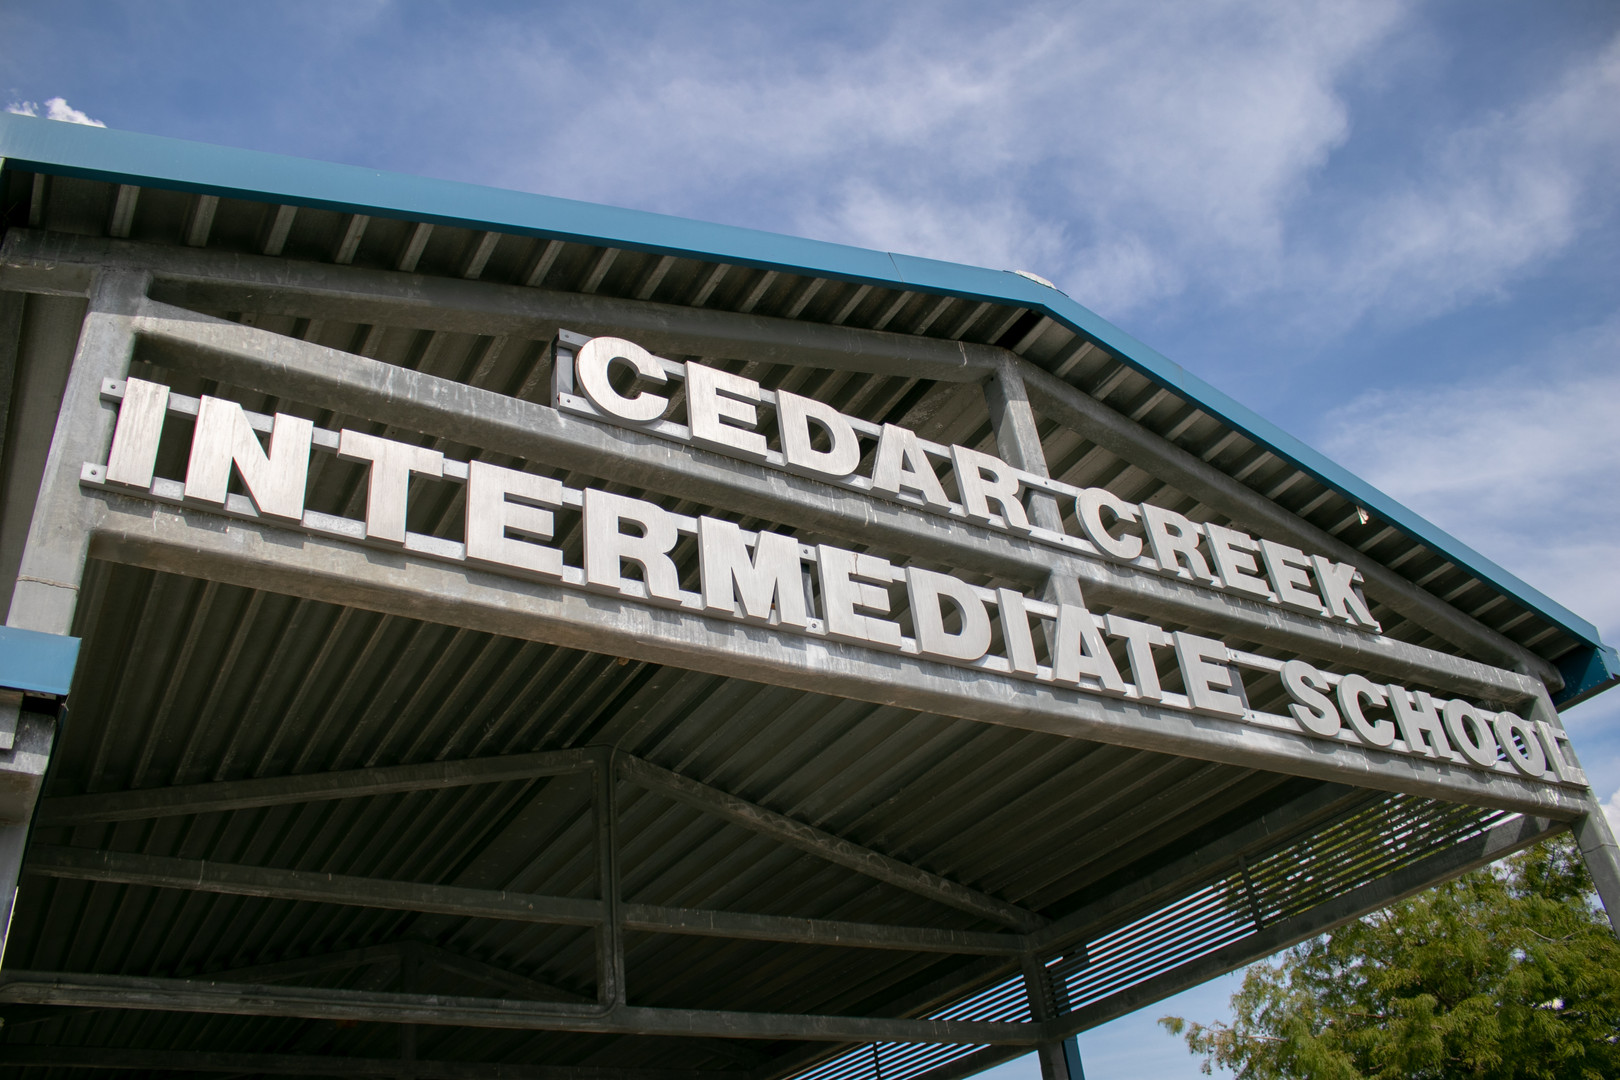 Cedar Creek Intermediate School